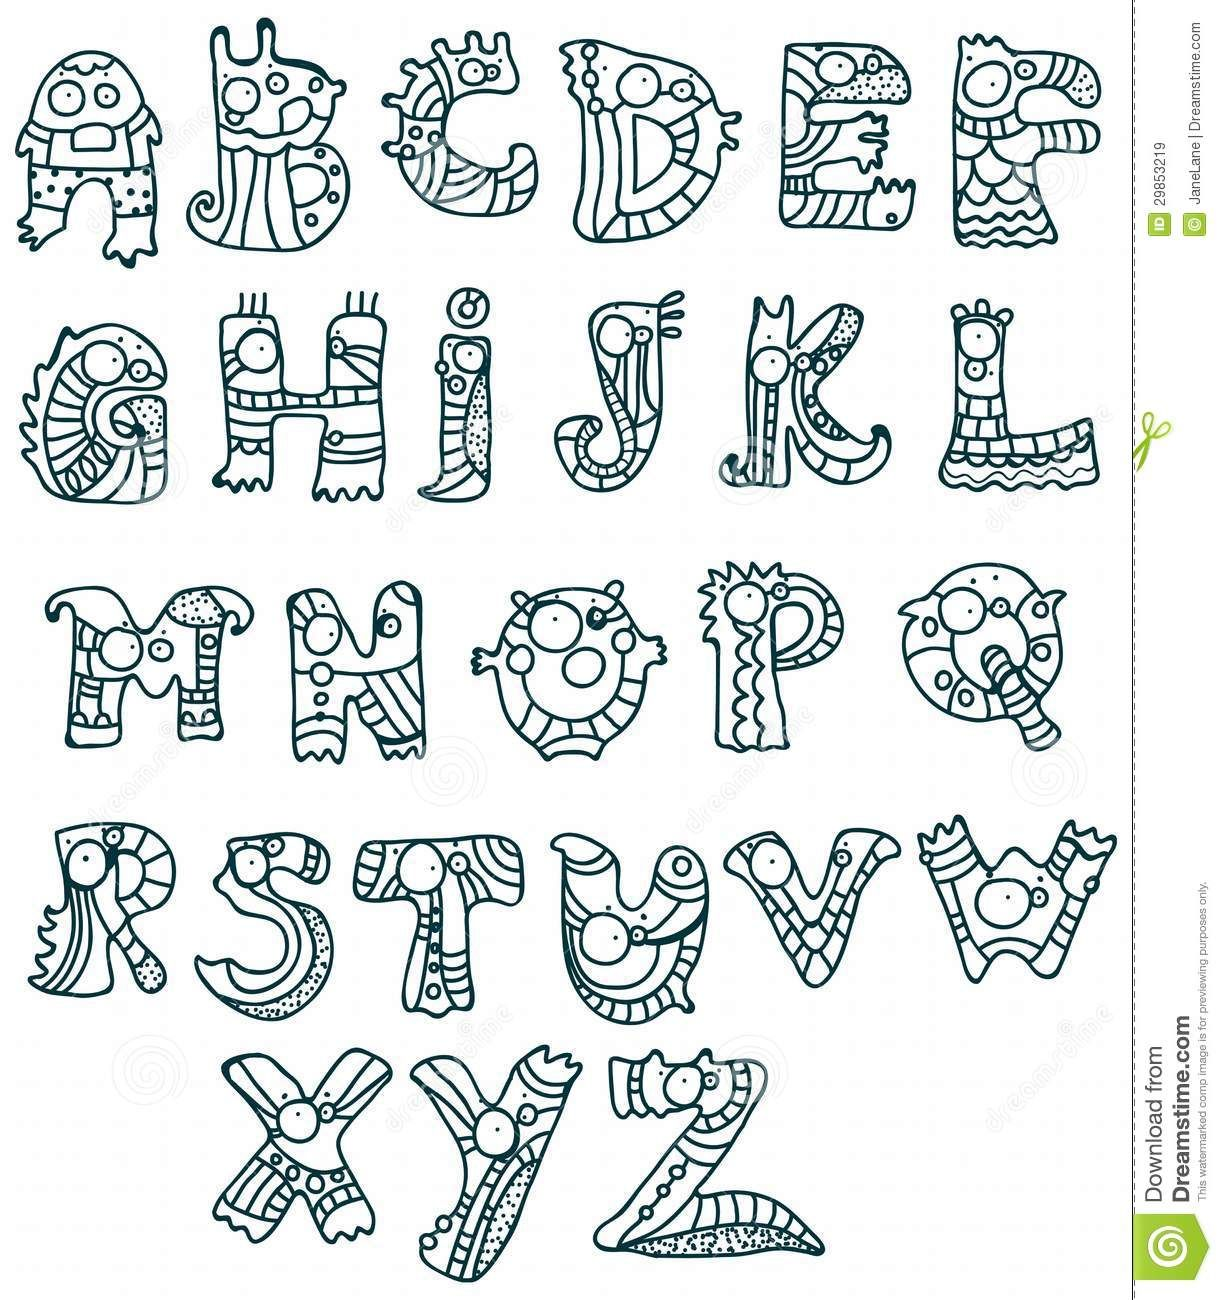 Cool Letters Drawing at GetDrawings com | Free for personal use Cool